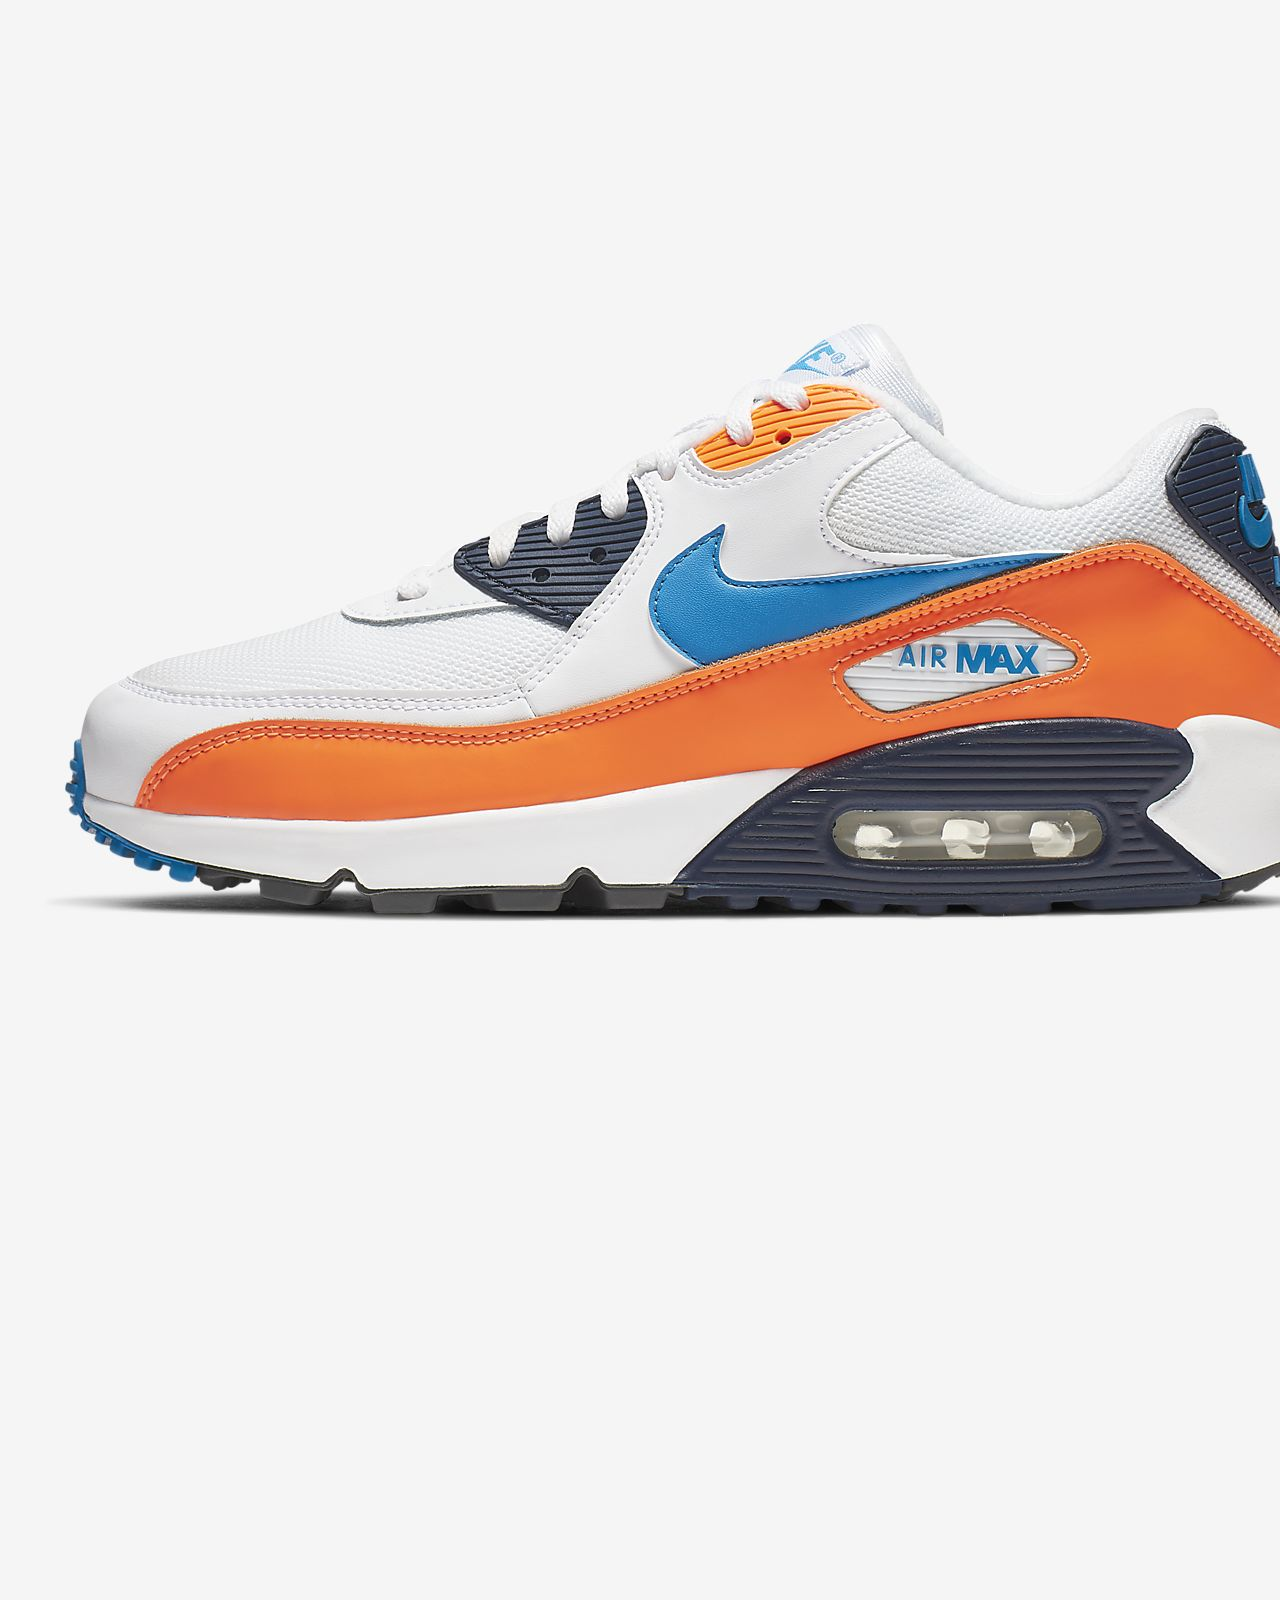 47f8f30447a90 Nike Air Max 90 Essential Men's Shoe. Nike.com